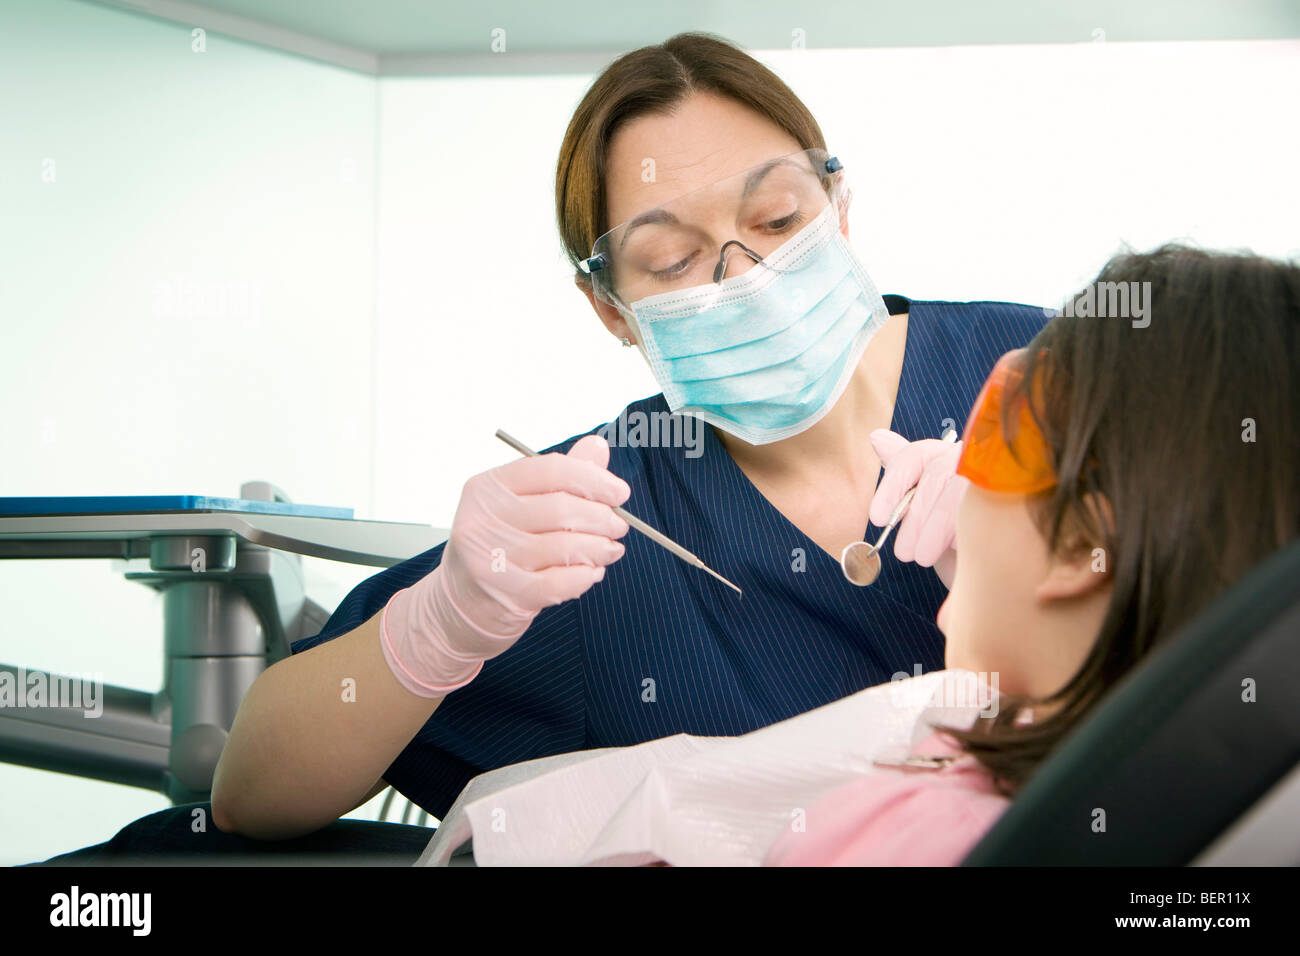 A female dentist treating a patient - Stock Image